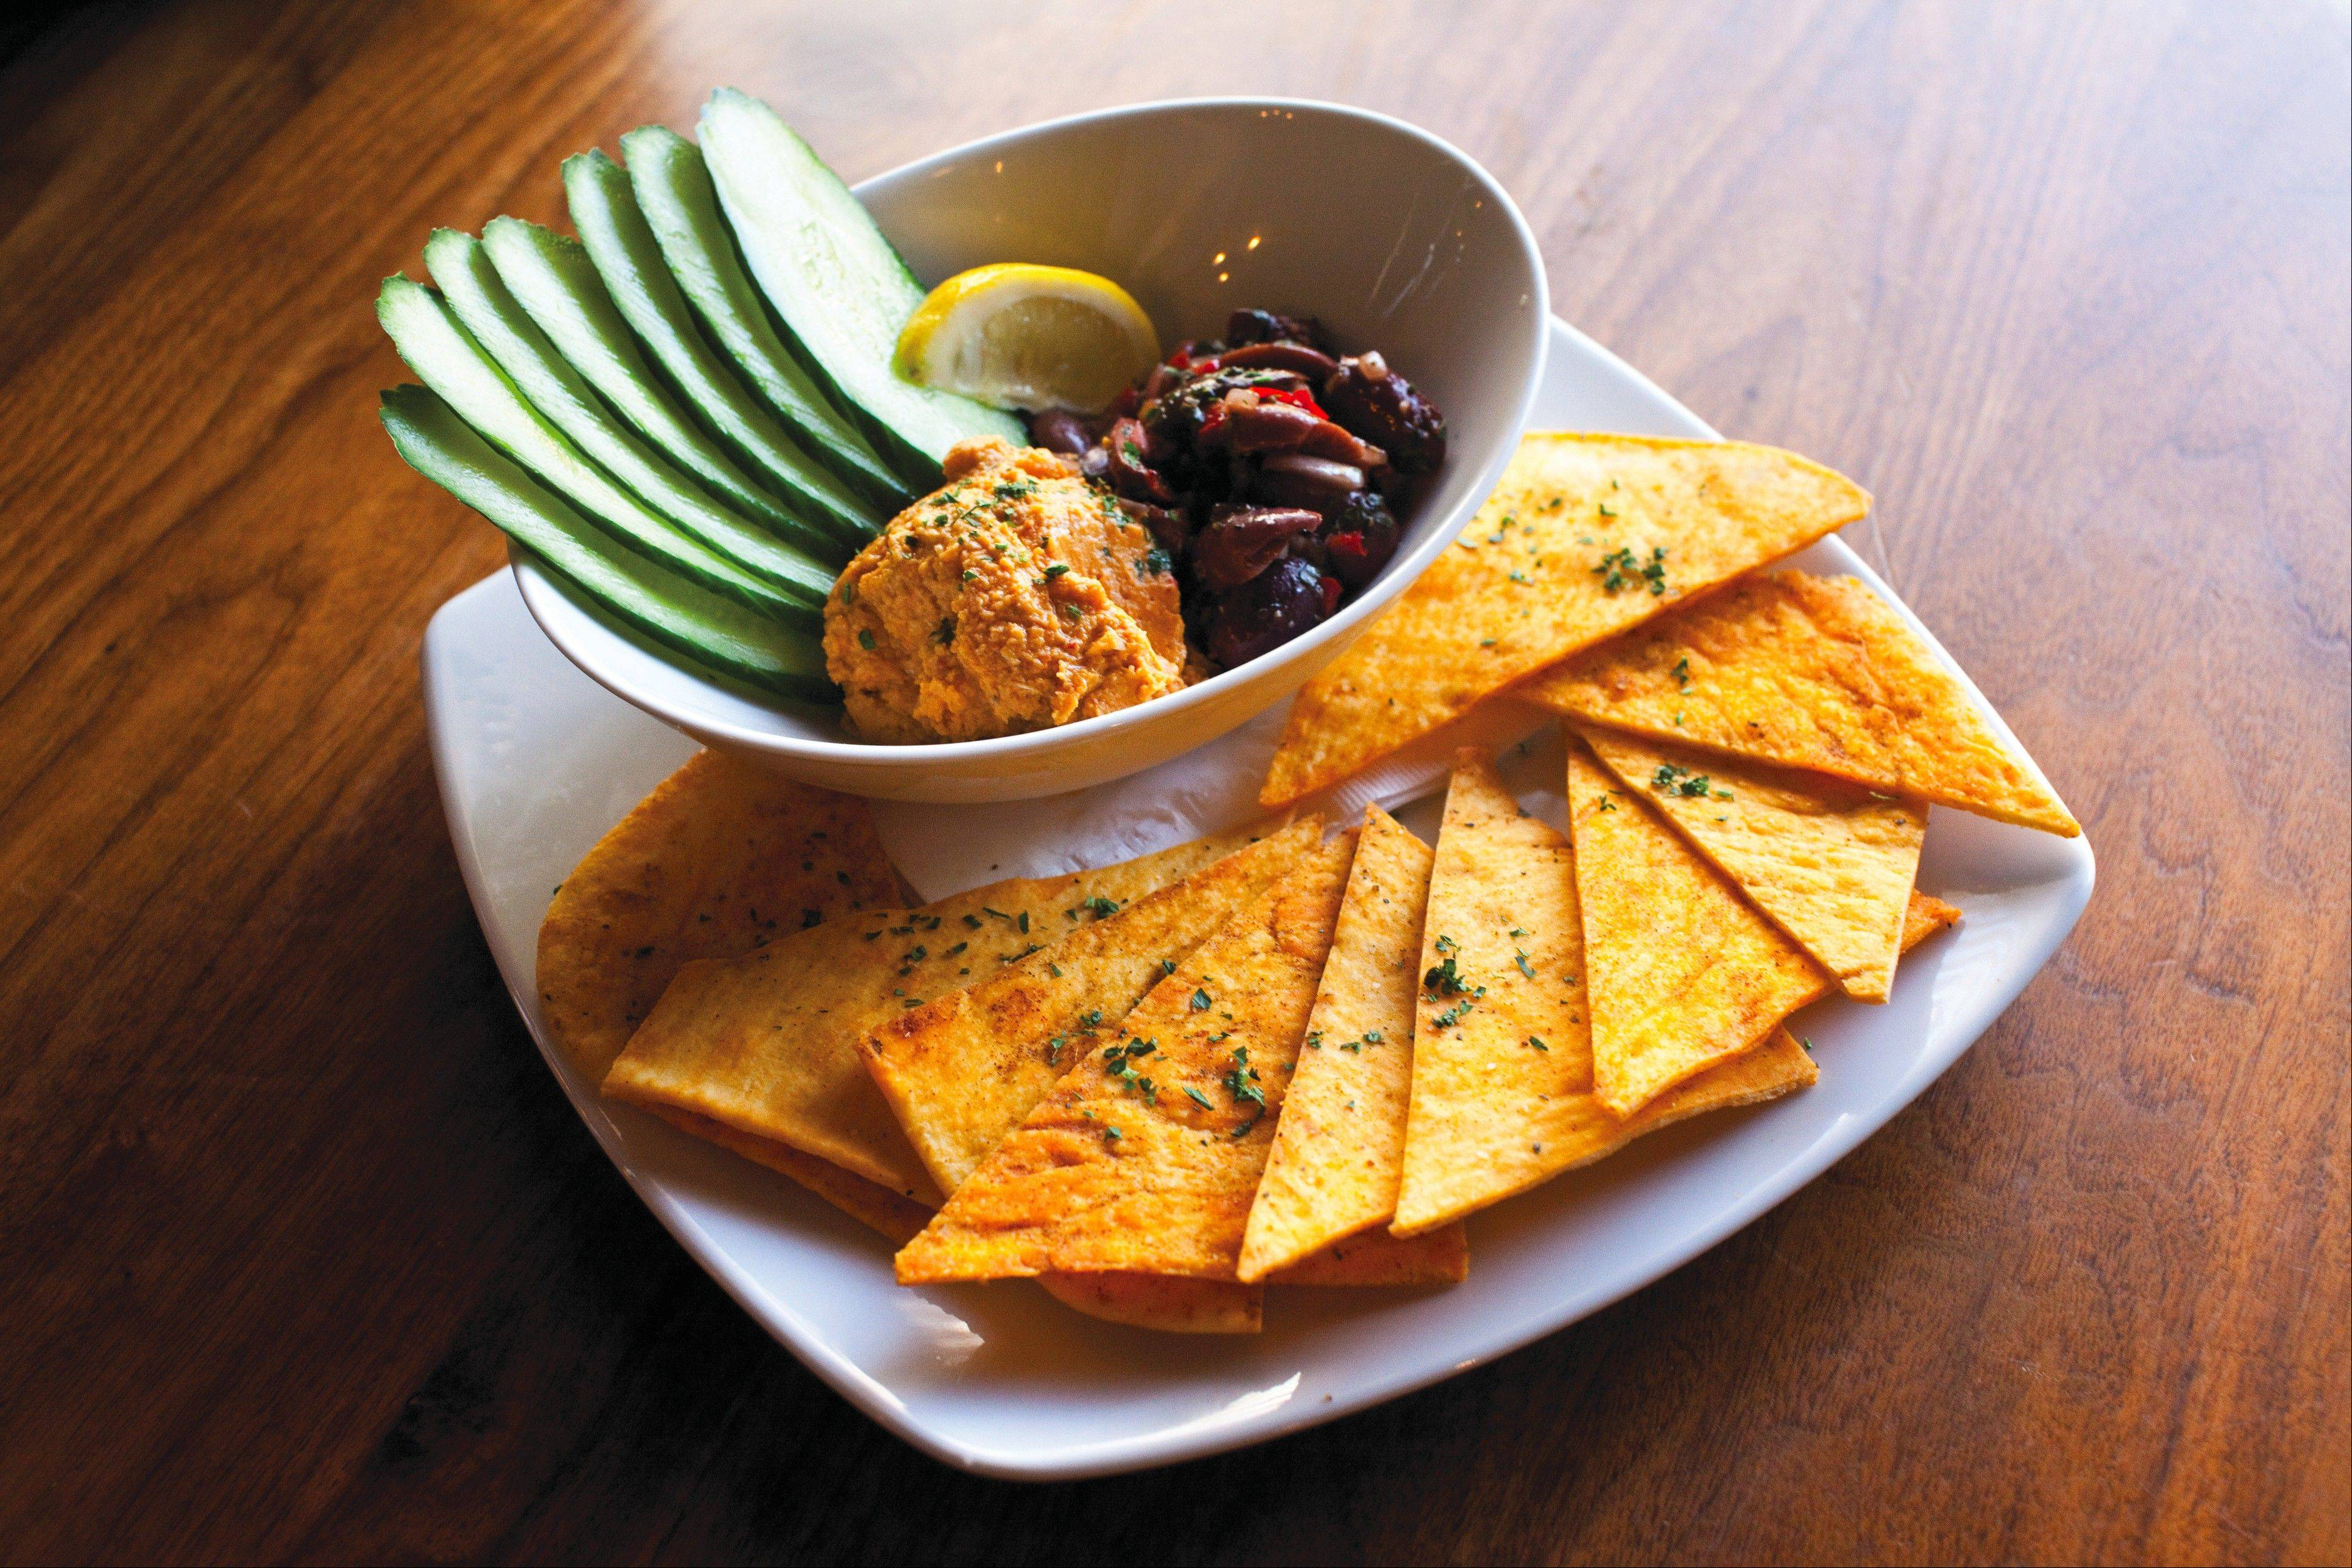 Roasted red pepper hummus is among the appetizer options at Park Tavern in Rosemont.